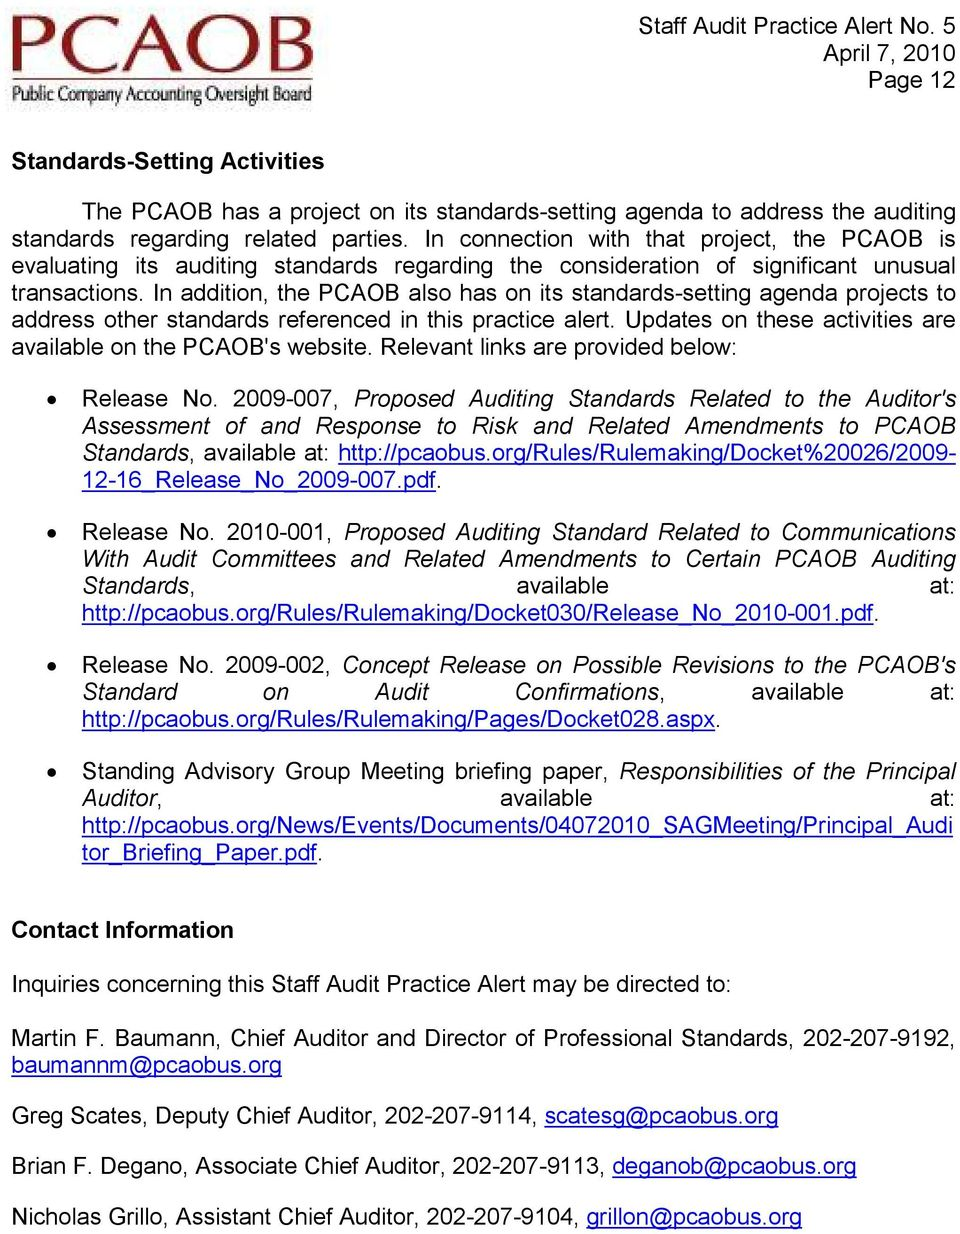 In addition, the PCAOB also has on its standards-setting agenda projects to address other standards referenced in this practice alert. Updates on these activities are available on the PCAOB's website.